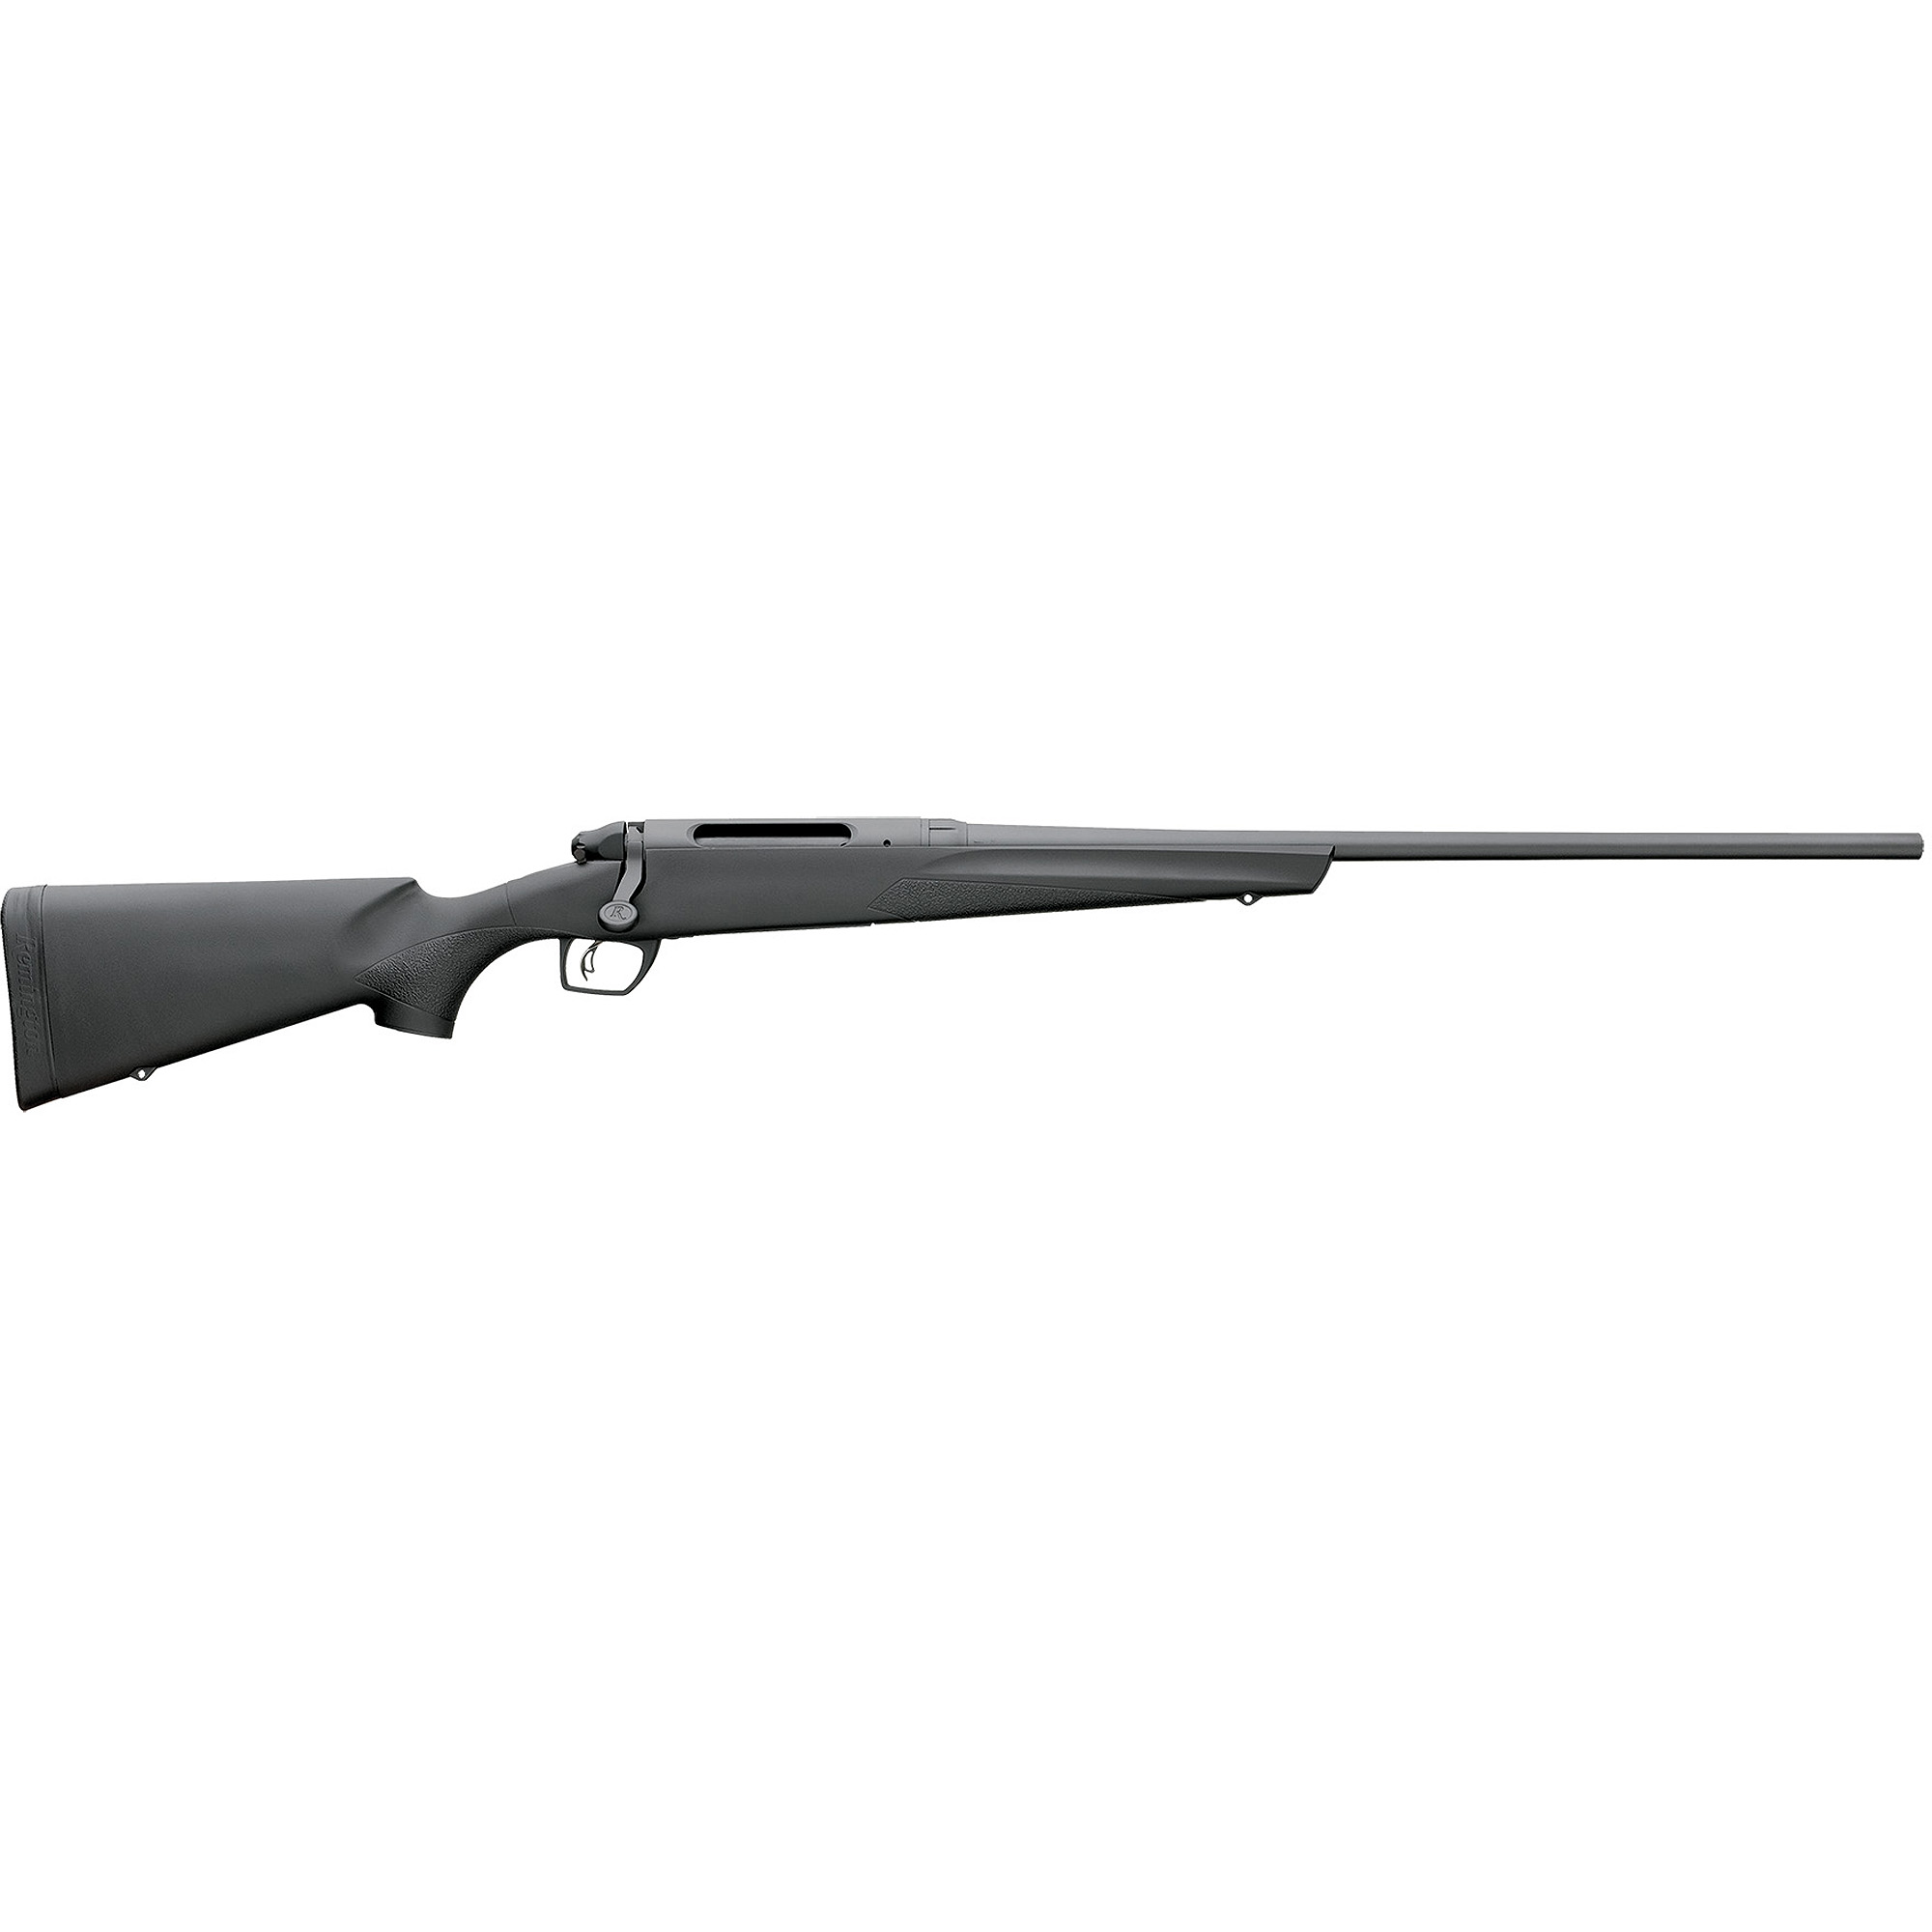 "DO NOT PUBLISH Remington 85834 783 Bolt Action Rifle, 270 Winchester, 22"", 4+1 Capacity, Black Synthetic Stock, Matte Blued"